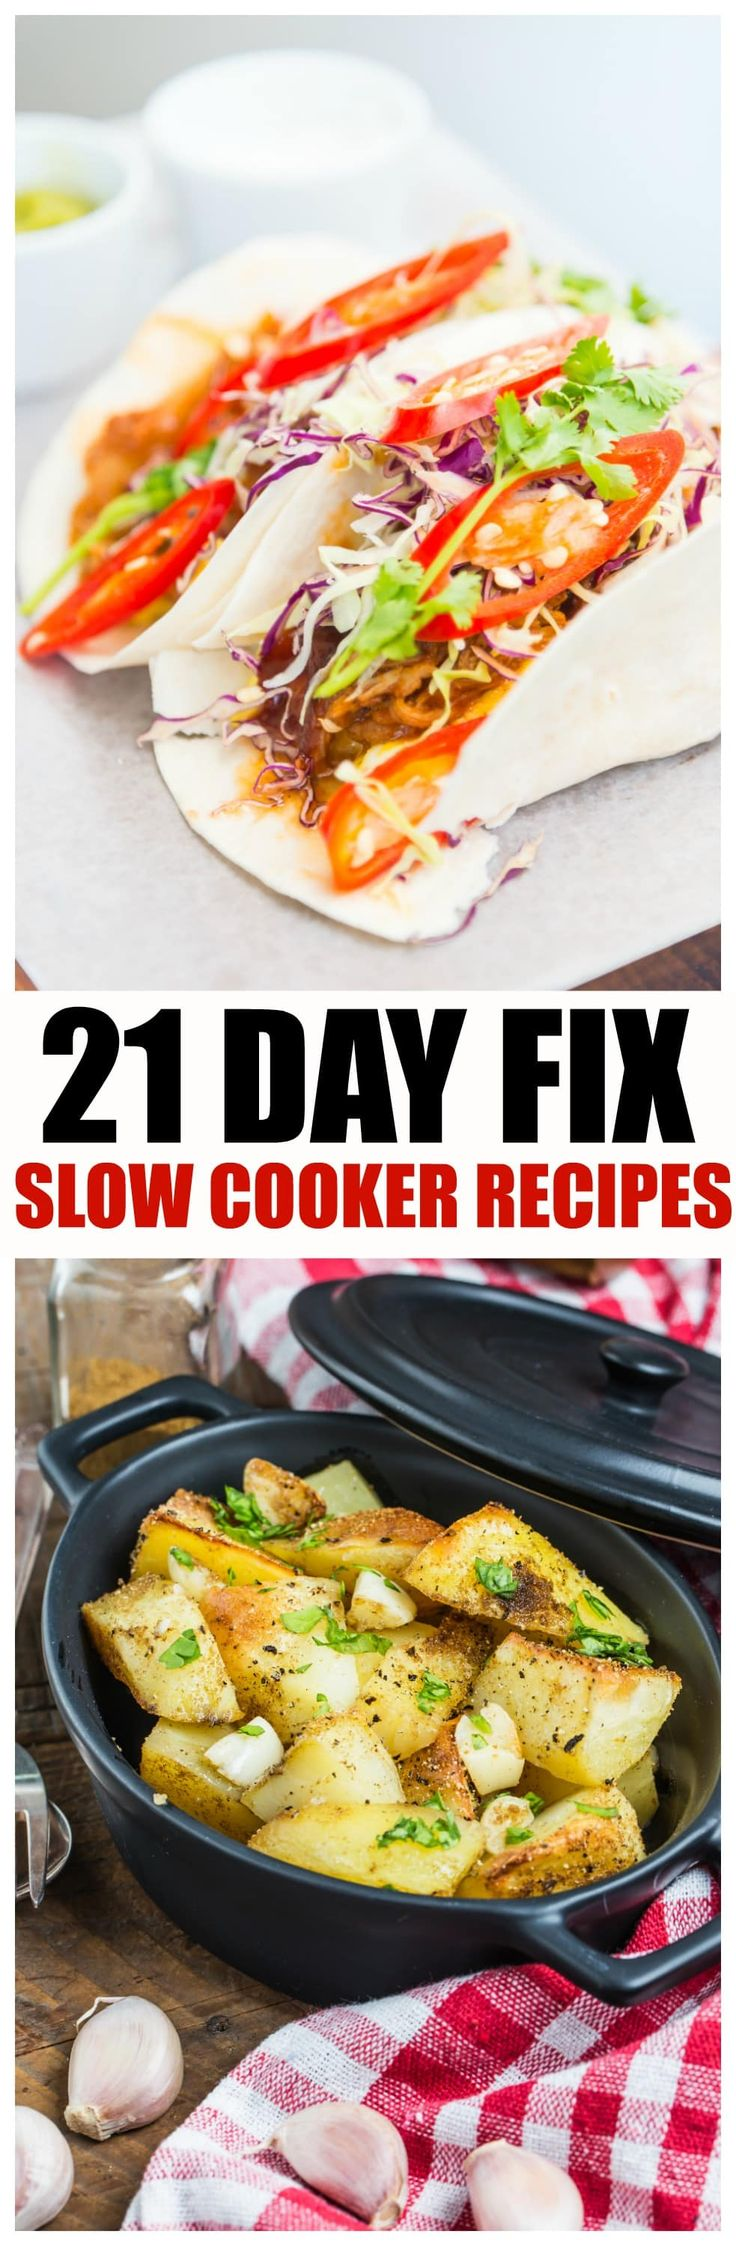 21 Day Fix Slow Cooker Recipes with Crock Pot